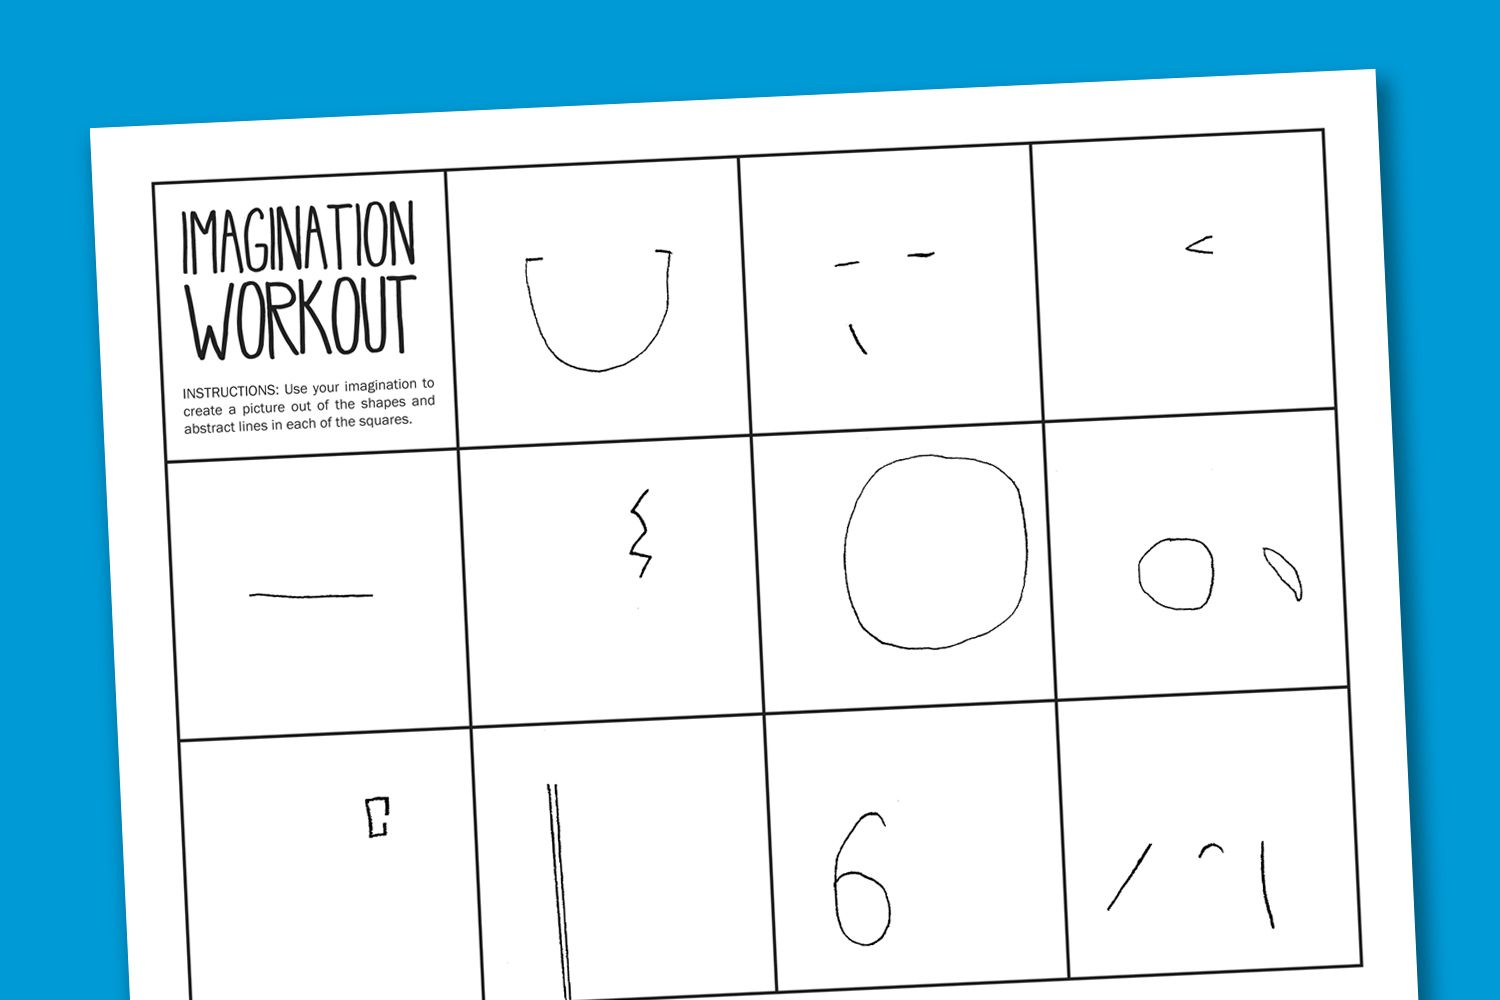 Imagination Workout Free Printable Art Worksheet - Good For Creative | Printable Art Worksheets